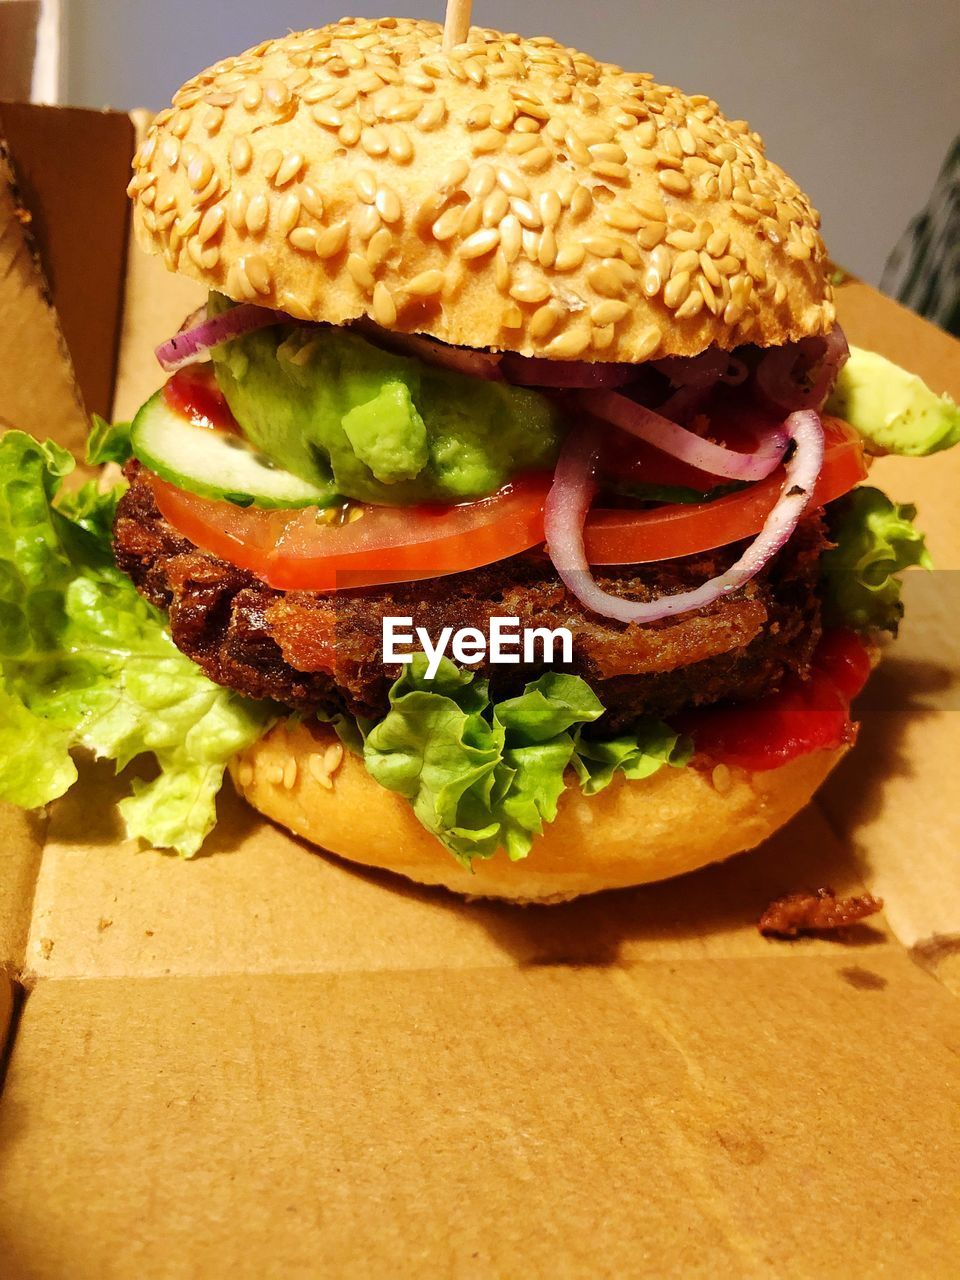 sandwich, fast food, burger, unhealthy eating, food and drink, ready-to-eat, food, hamburger, freshness, bread, vegetable, meat, indoors, lettuce, close-up, no people, still life, table, take out food, bun, fried, snack, cheeseburger, temptation